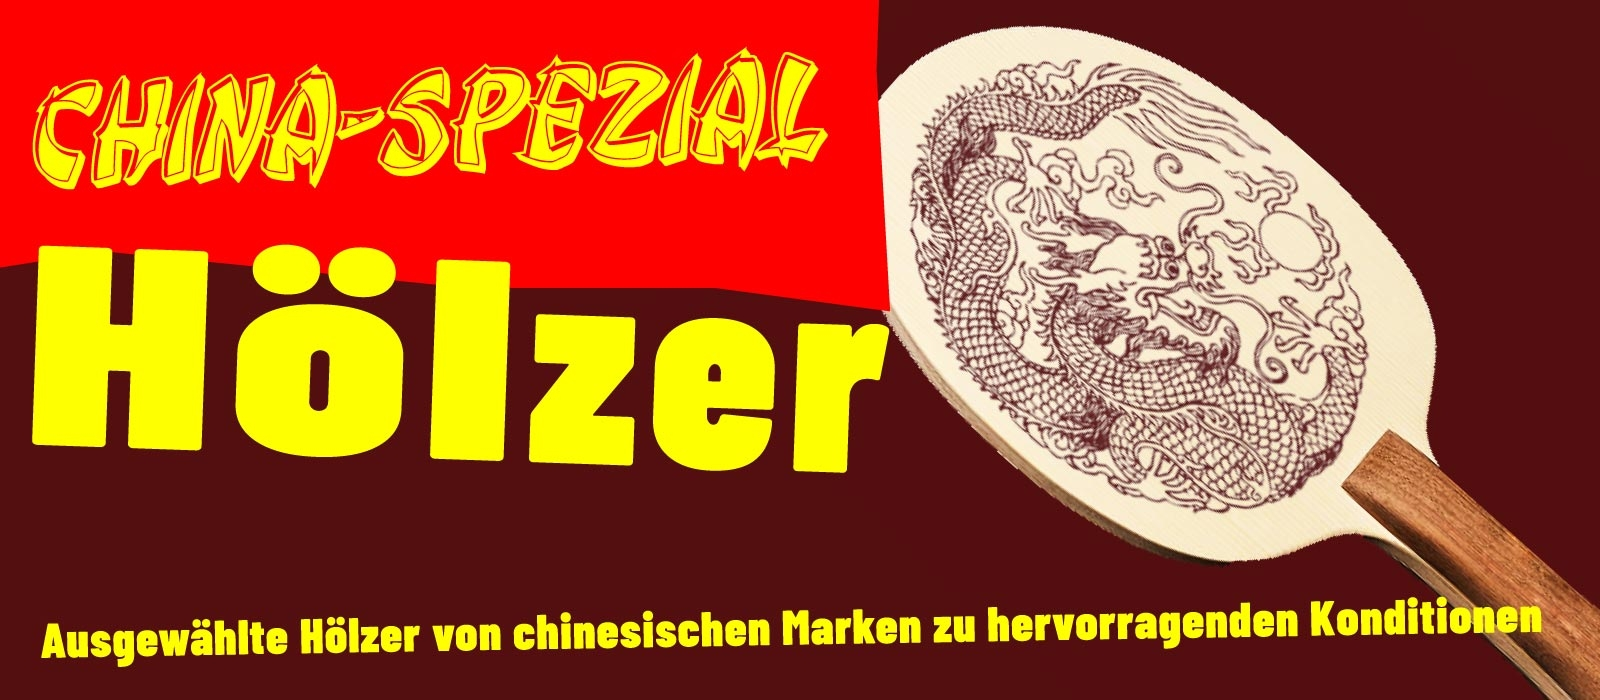 China-Spezial Hölzer - All